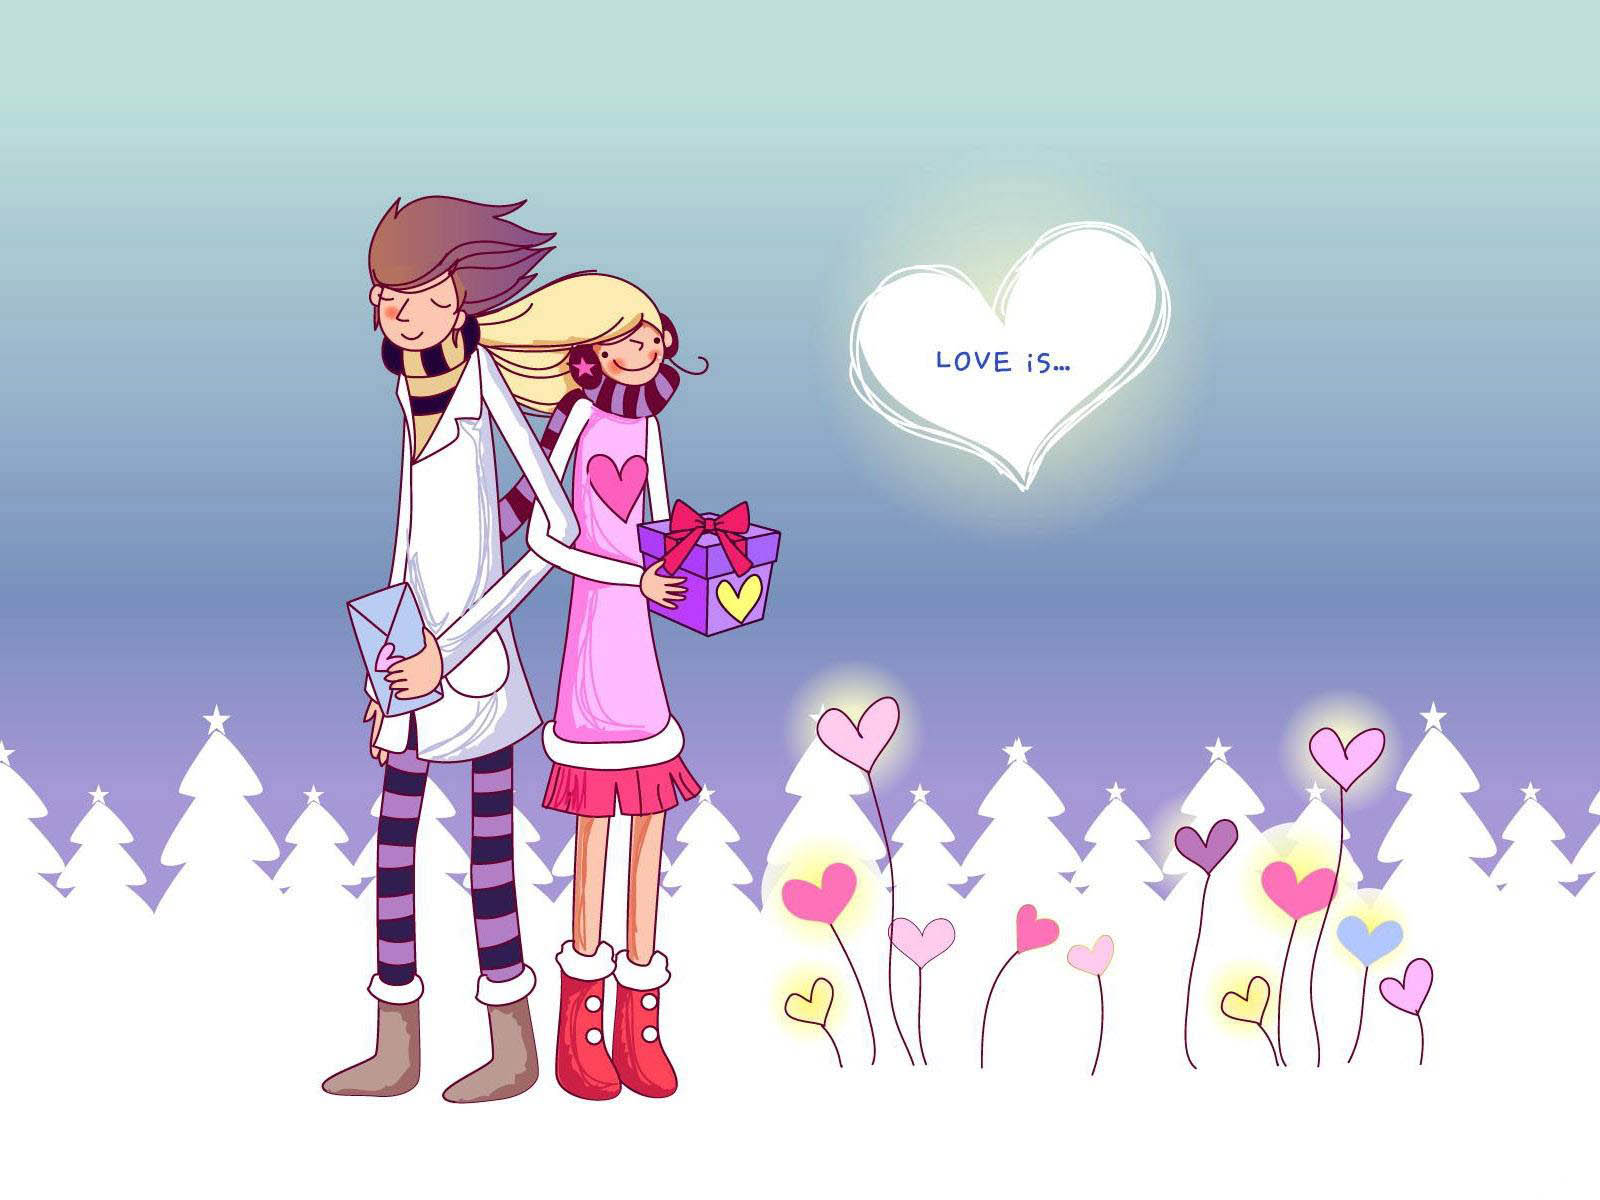 Love U cartoon Wallpaper : wallpapers: Romantic Love Wallpapers